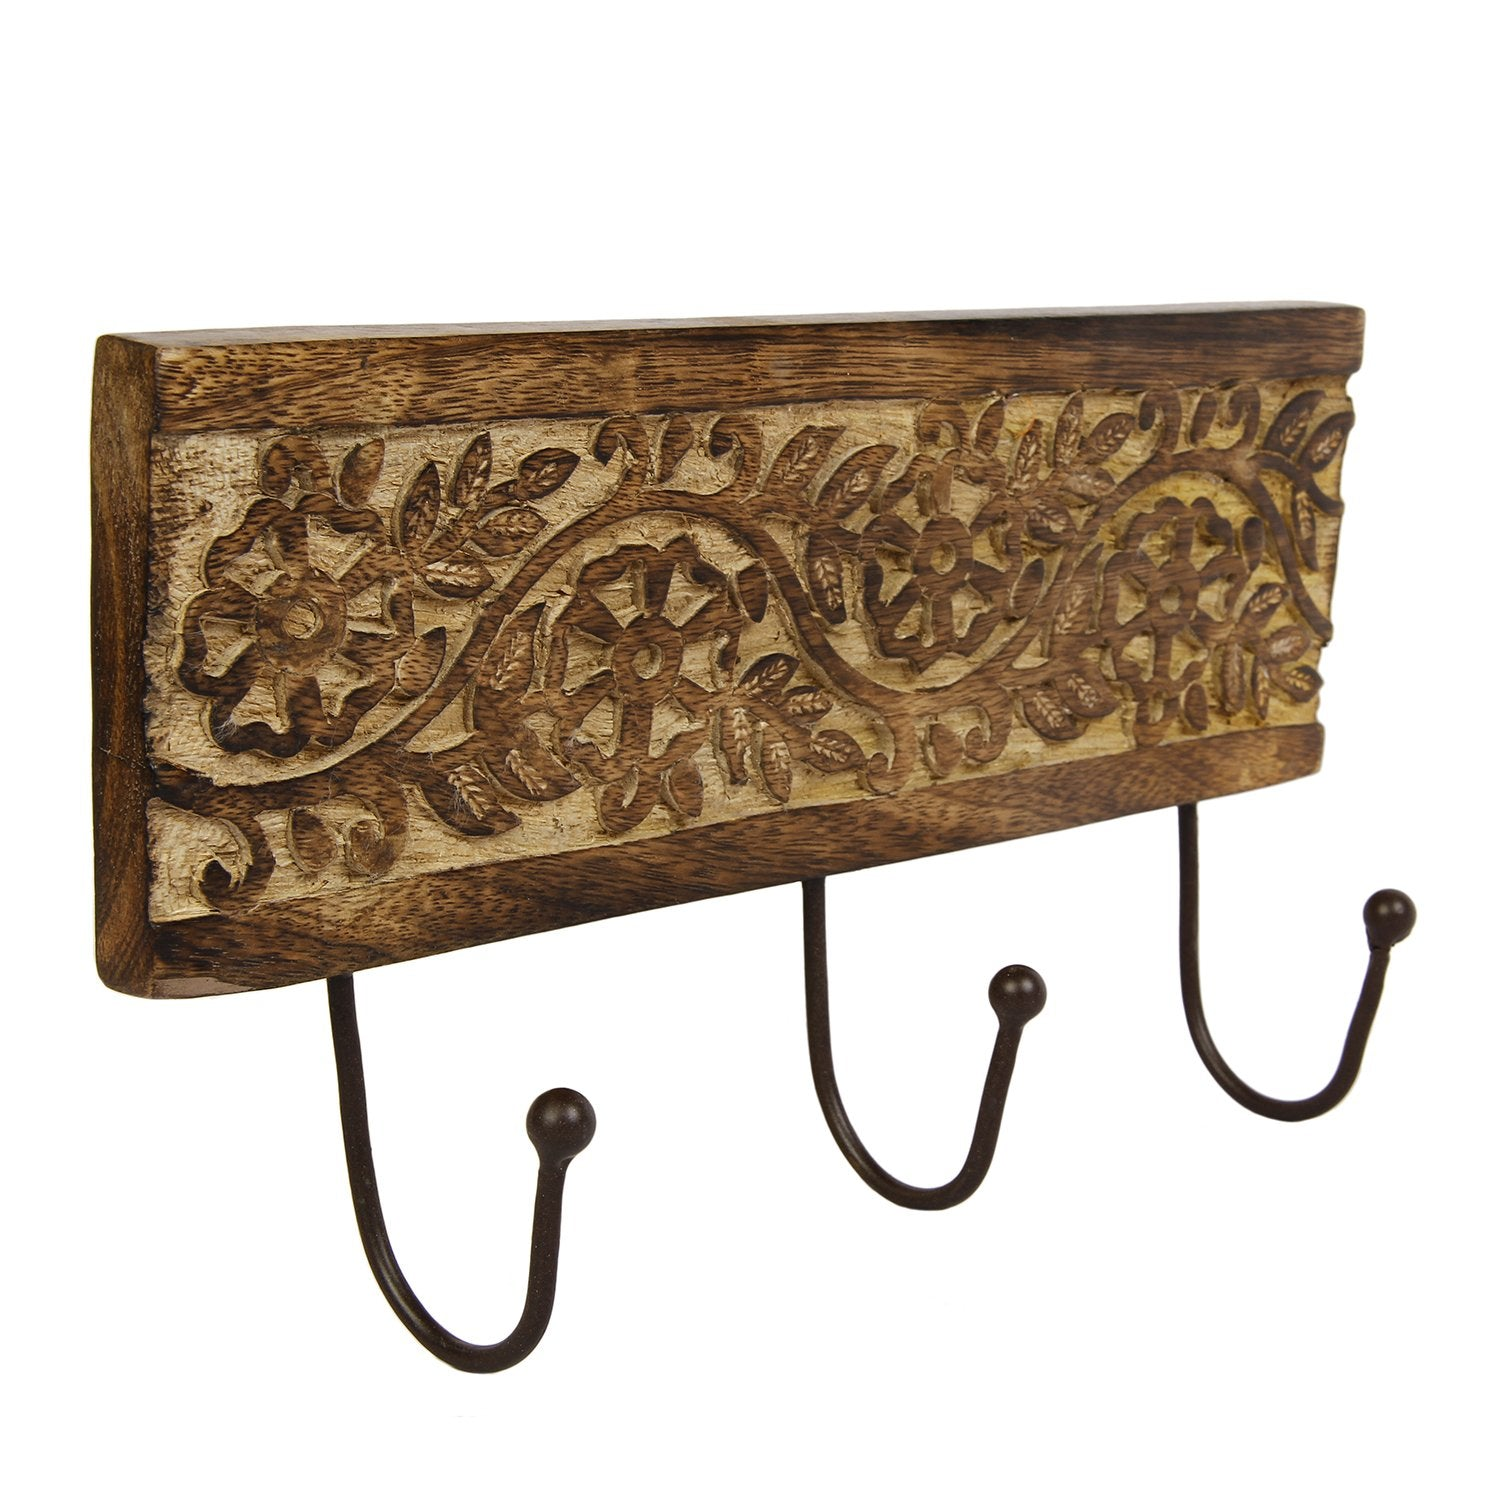 Wall Mounted Key Coat Hanger with 3 Hooks Hat Umbrella Holder Wooden Floral Carved Home Kitchen Decorative